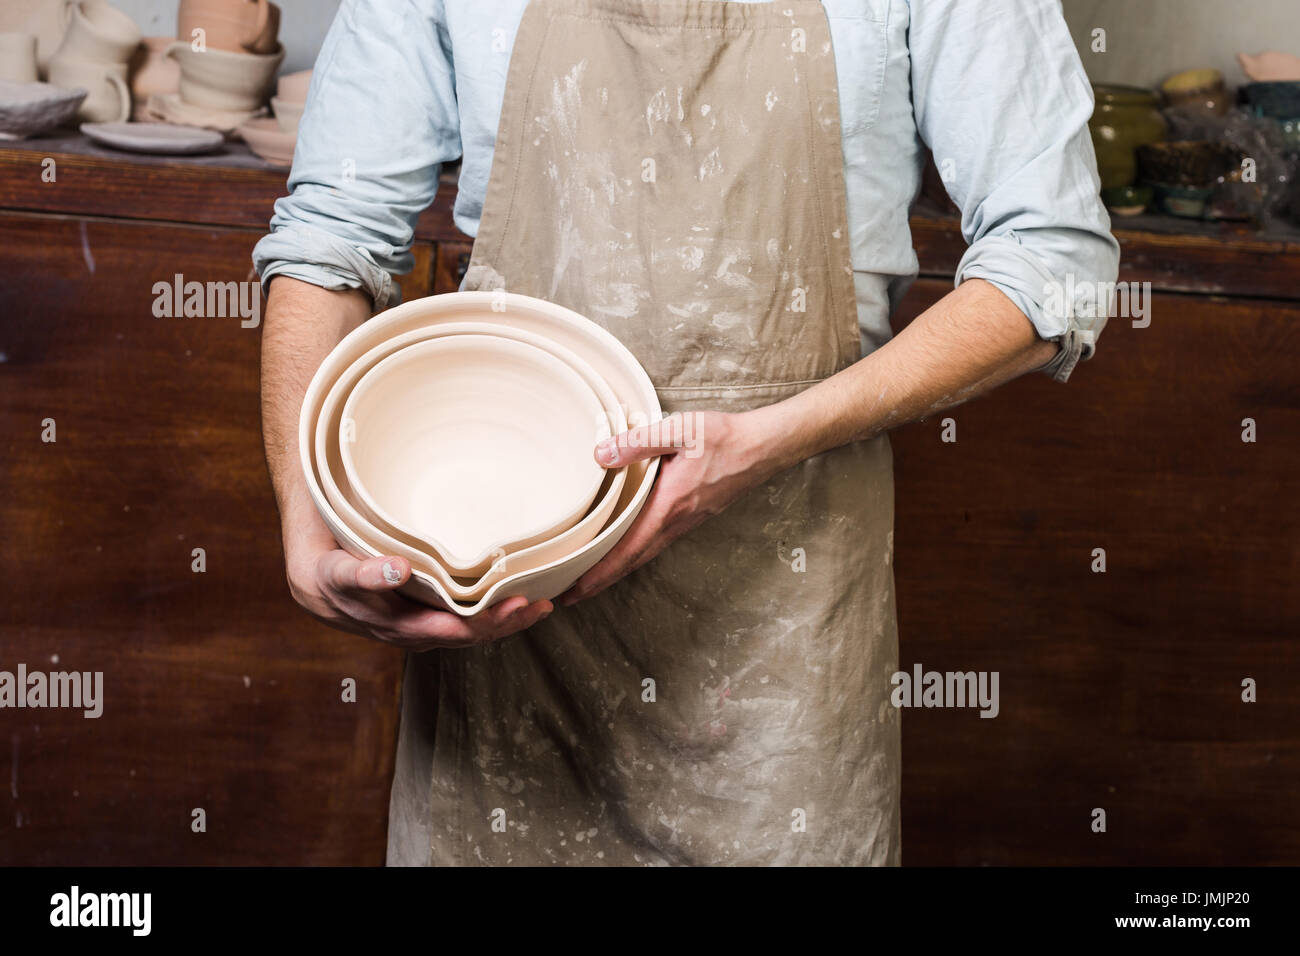 pottery, tools, ceramics art concept - closeup on male ceramist hands at workplace with baked bowls, cute finished clay utensils, wooden surface backg - Stock Image